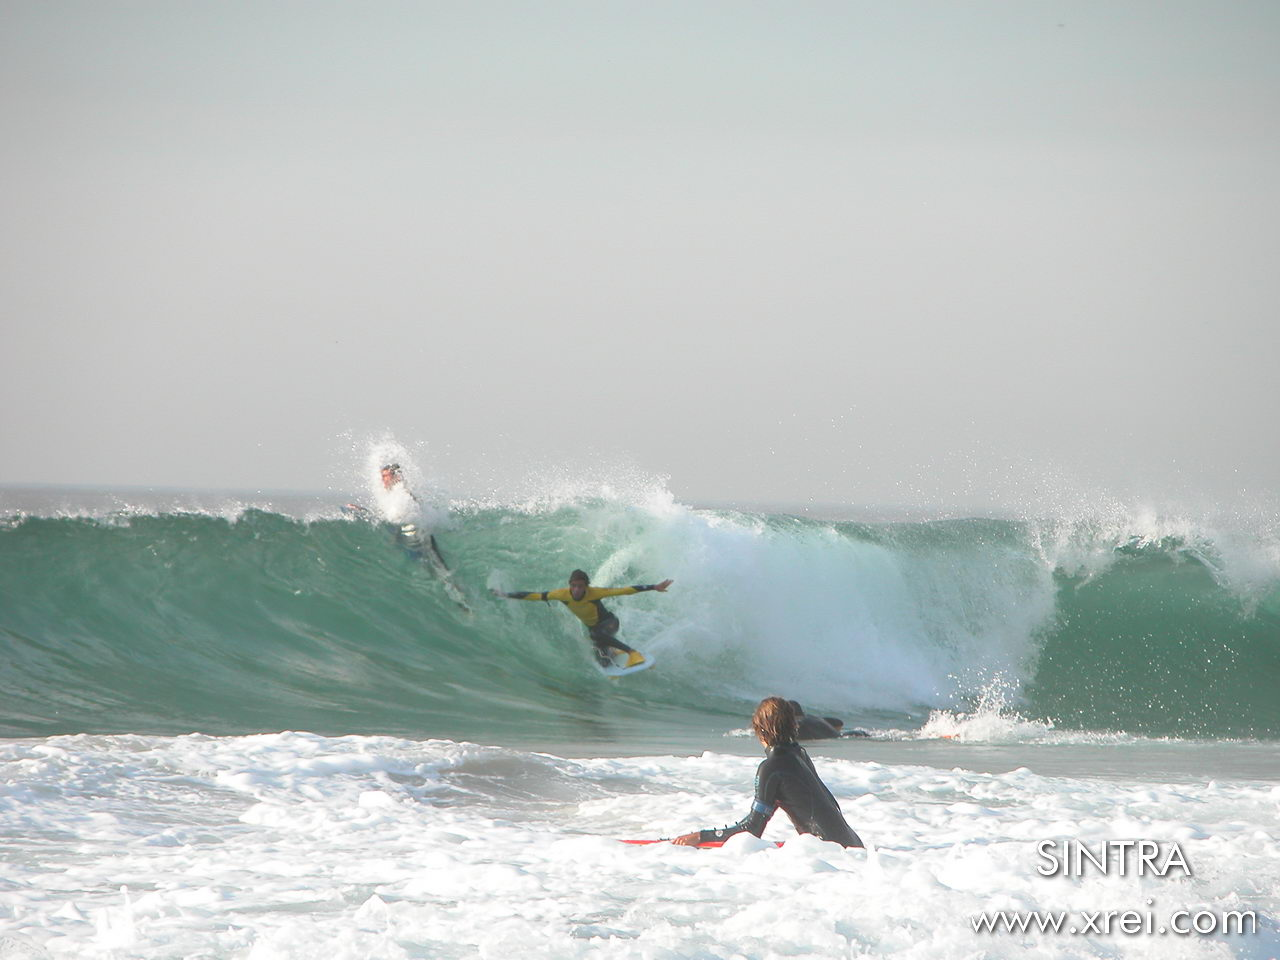 Praia Grande is a beach closer to Sintra, approximately 11 kilometers away. Praia Grande has good conditions for water sports, namely surfing and bodyboarding, hosting some of the stages of the surfing championships